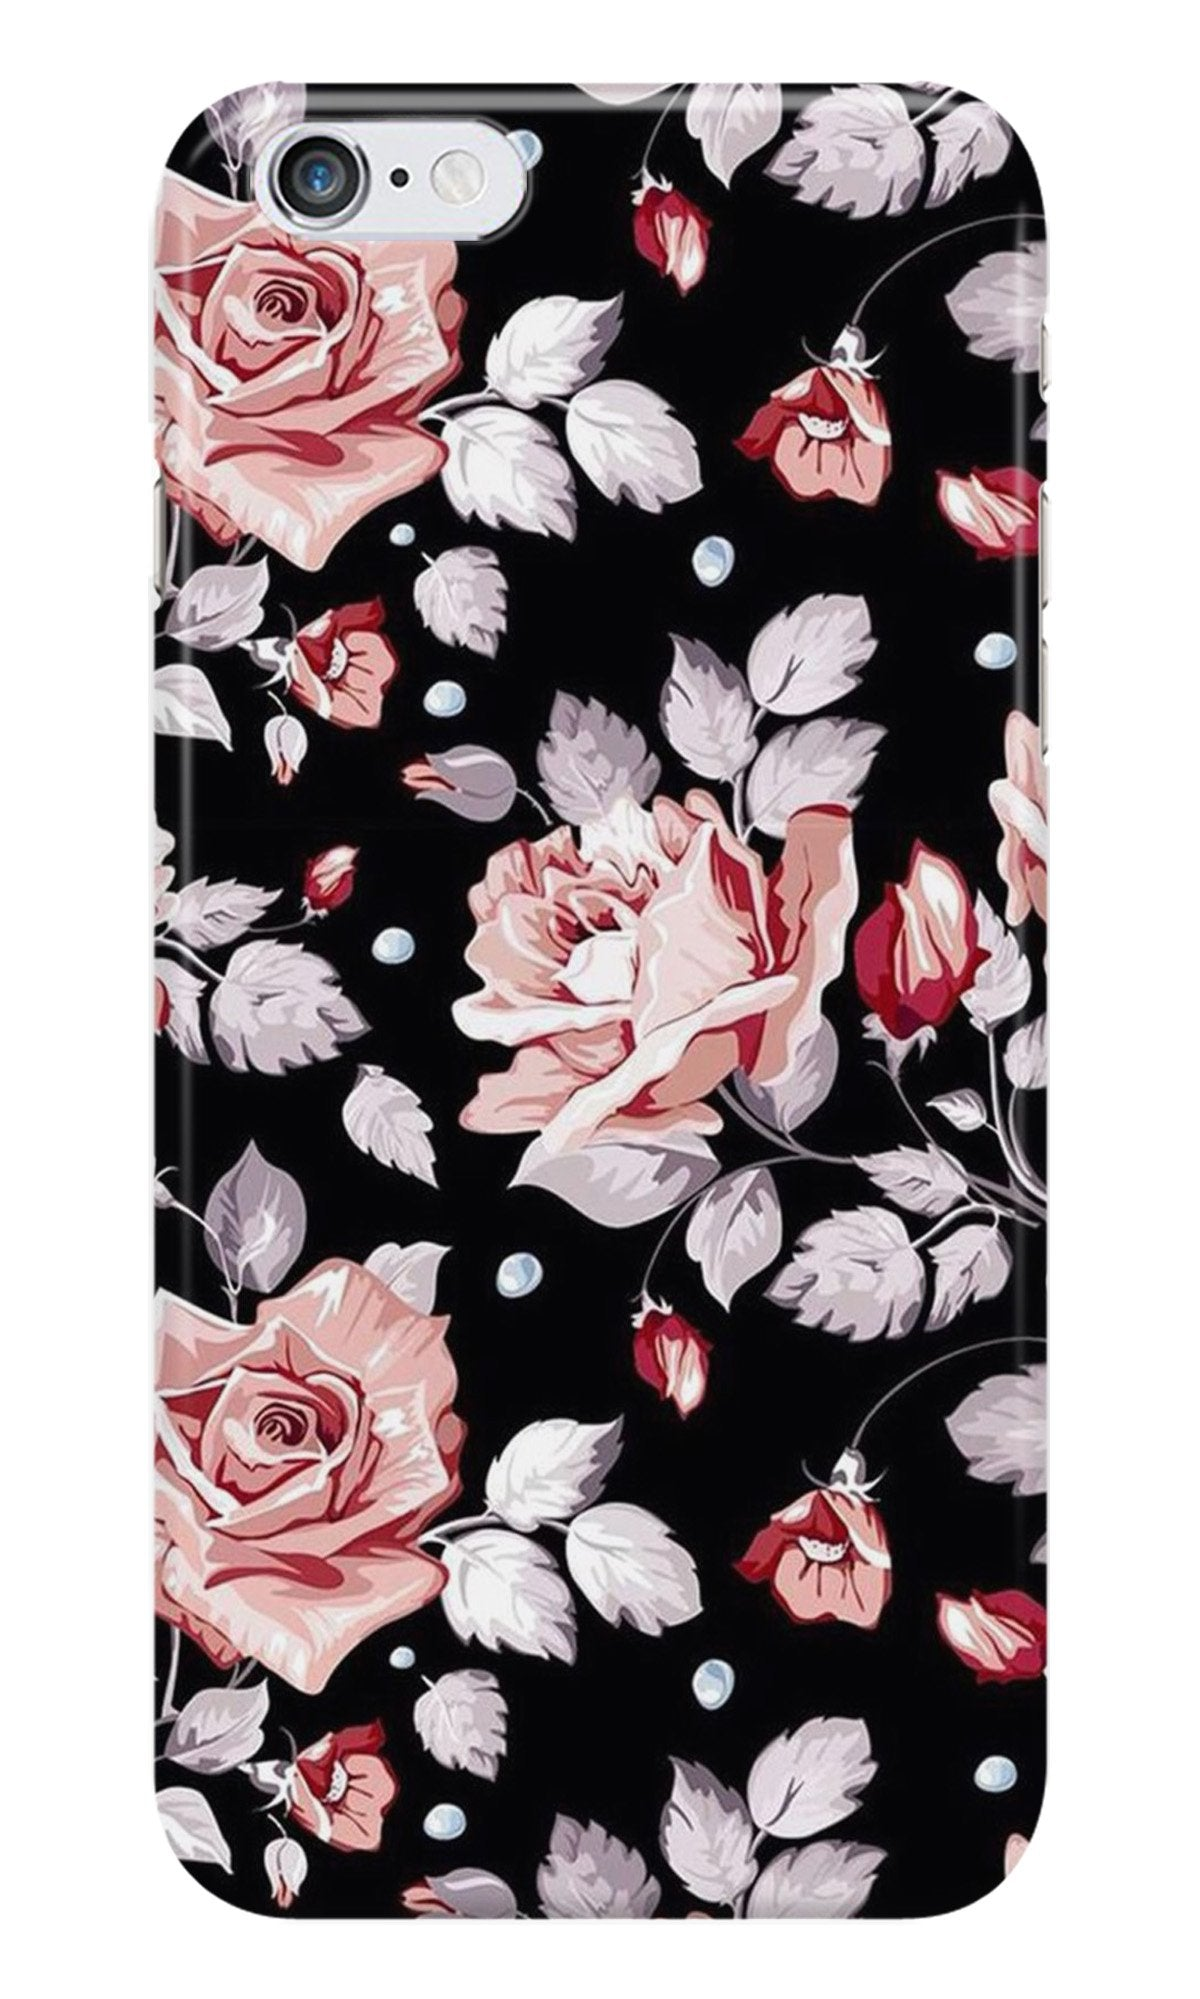 Pink rose Case for iPhone 6/ 6s